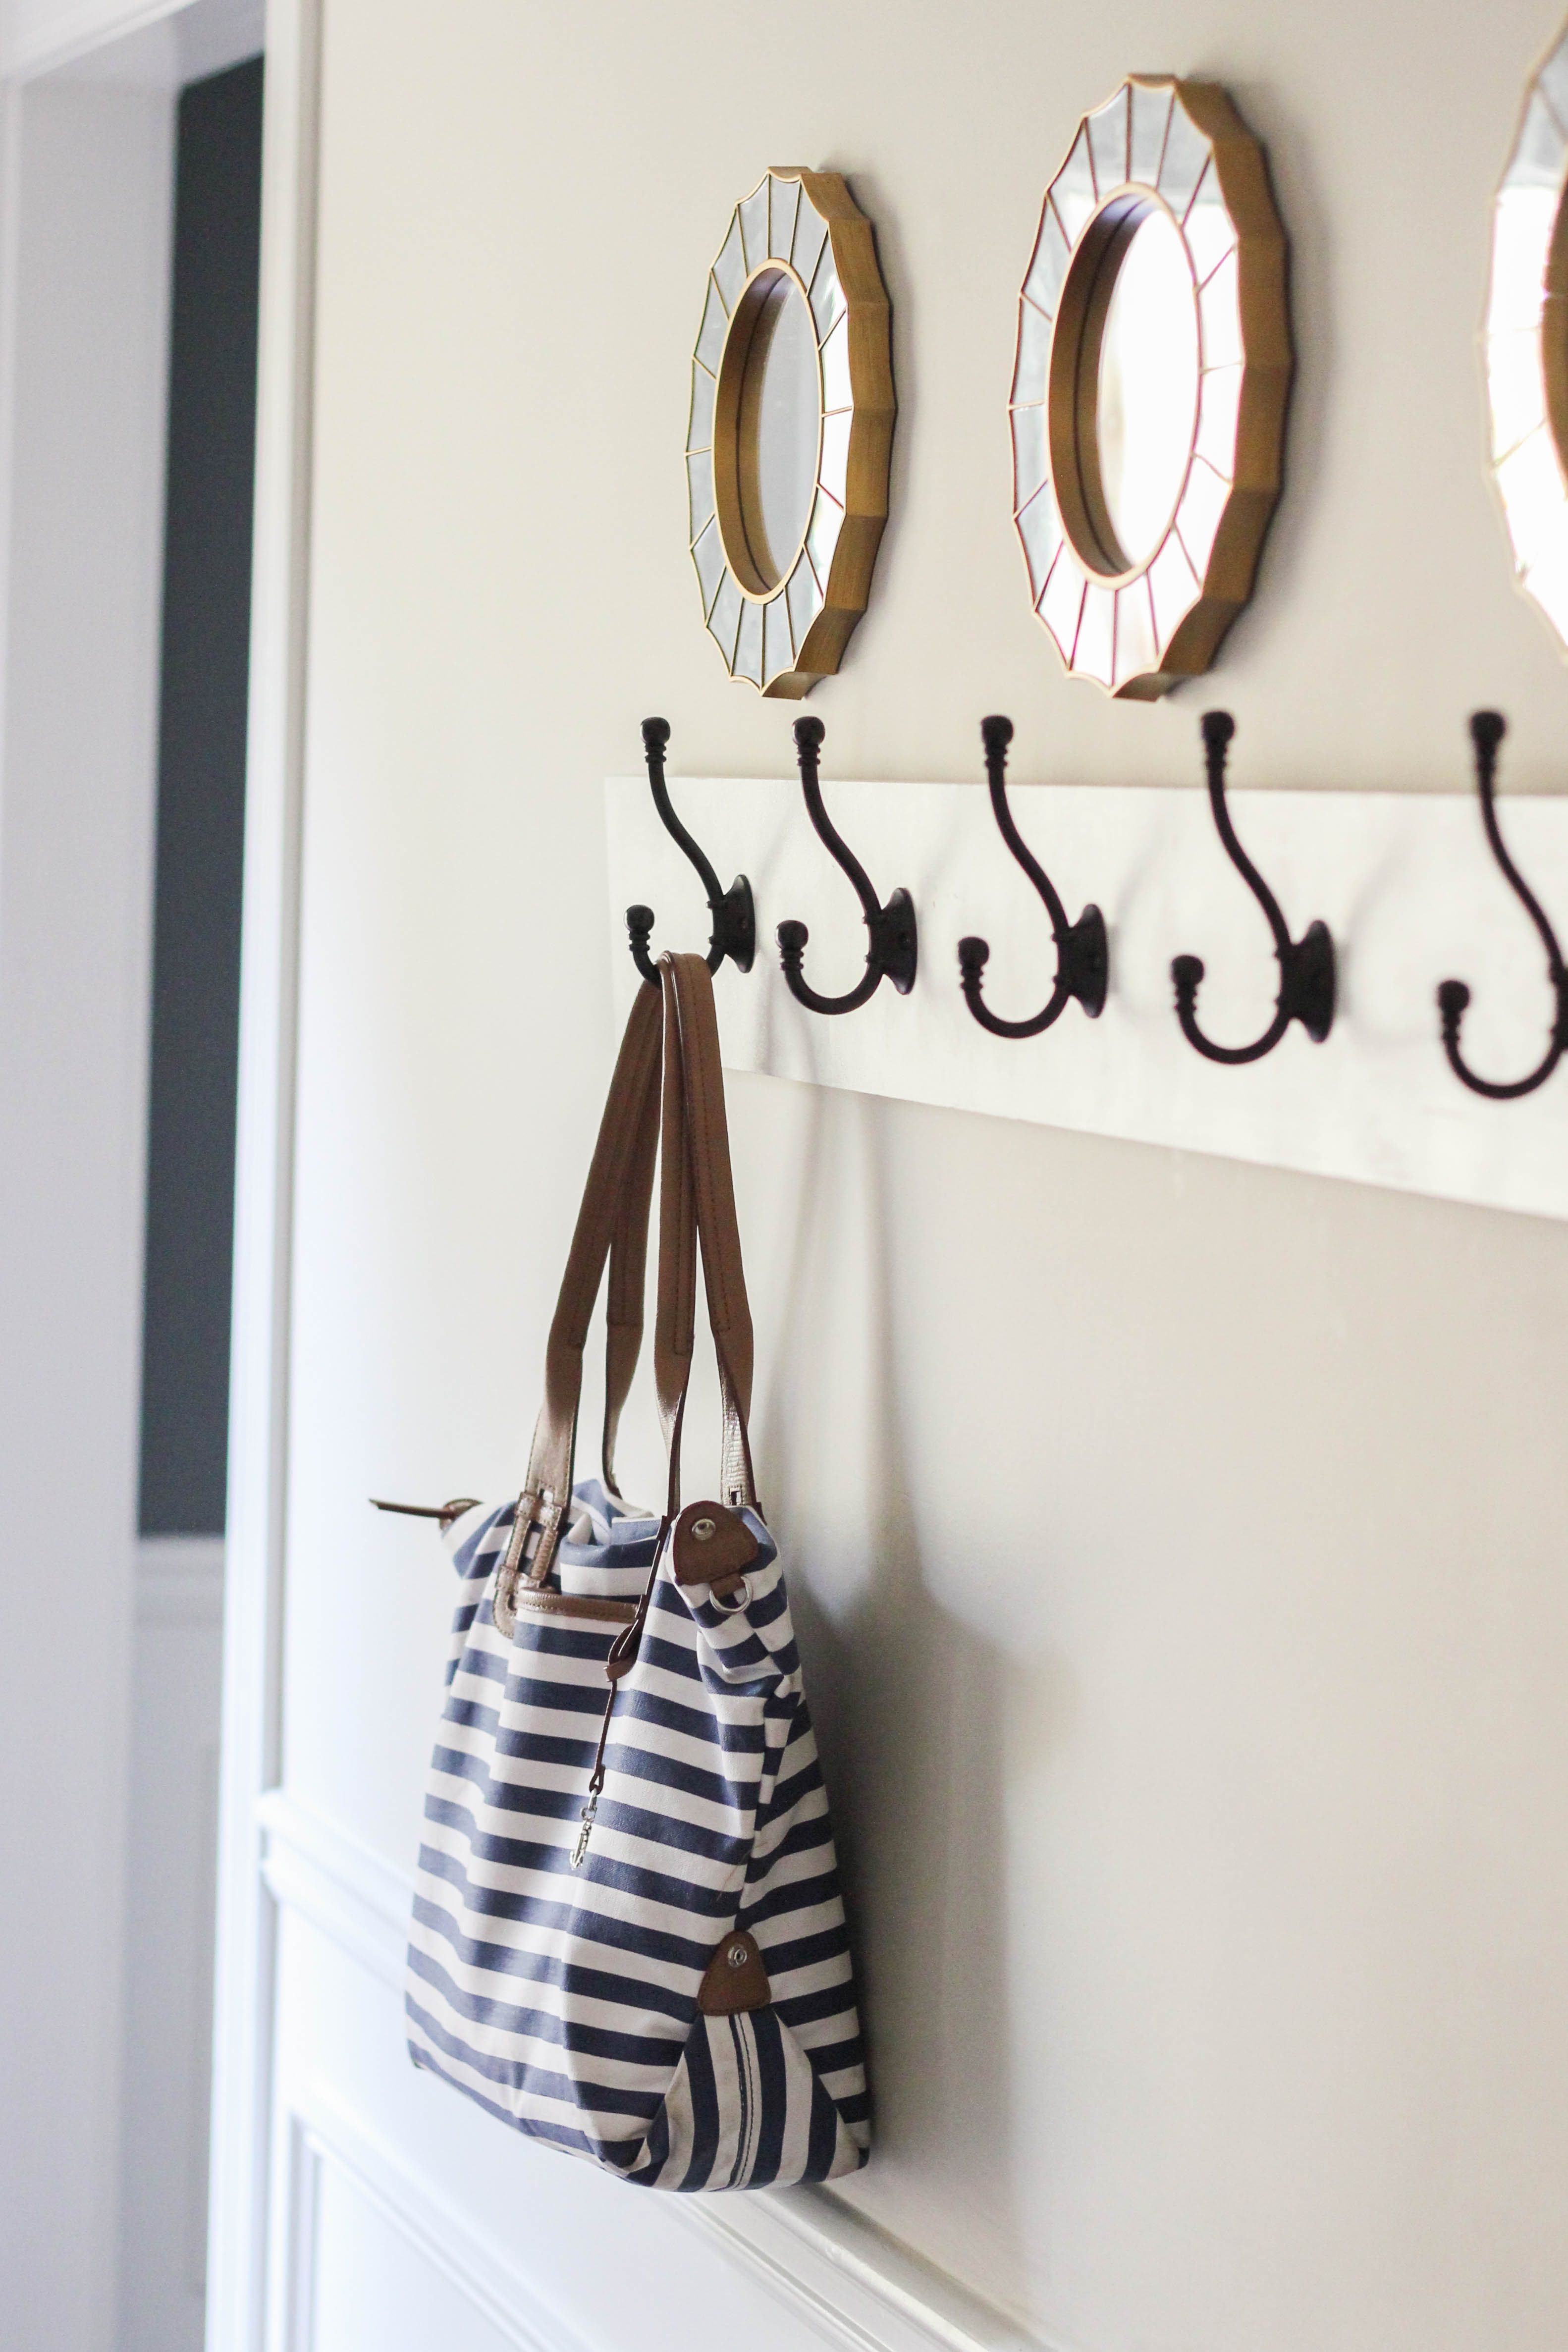 How To Build A Wall Mounted Coat Rack Erin Spain